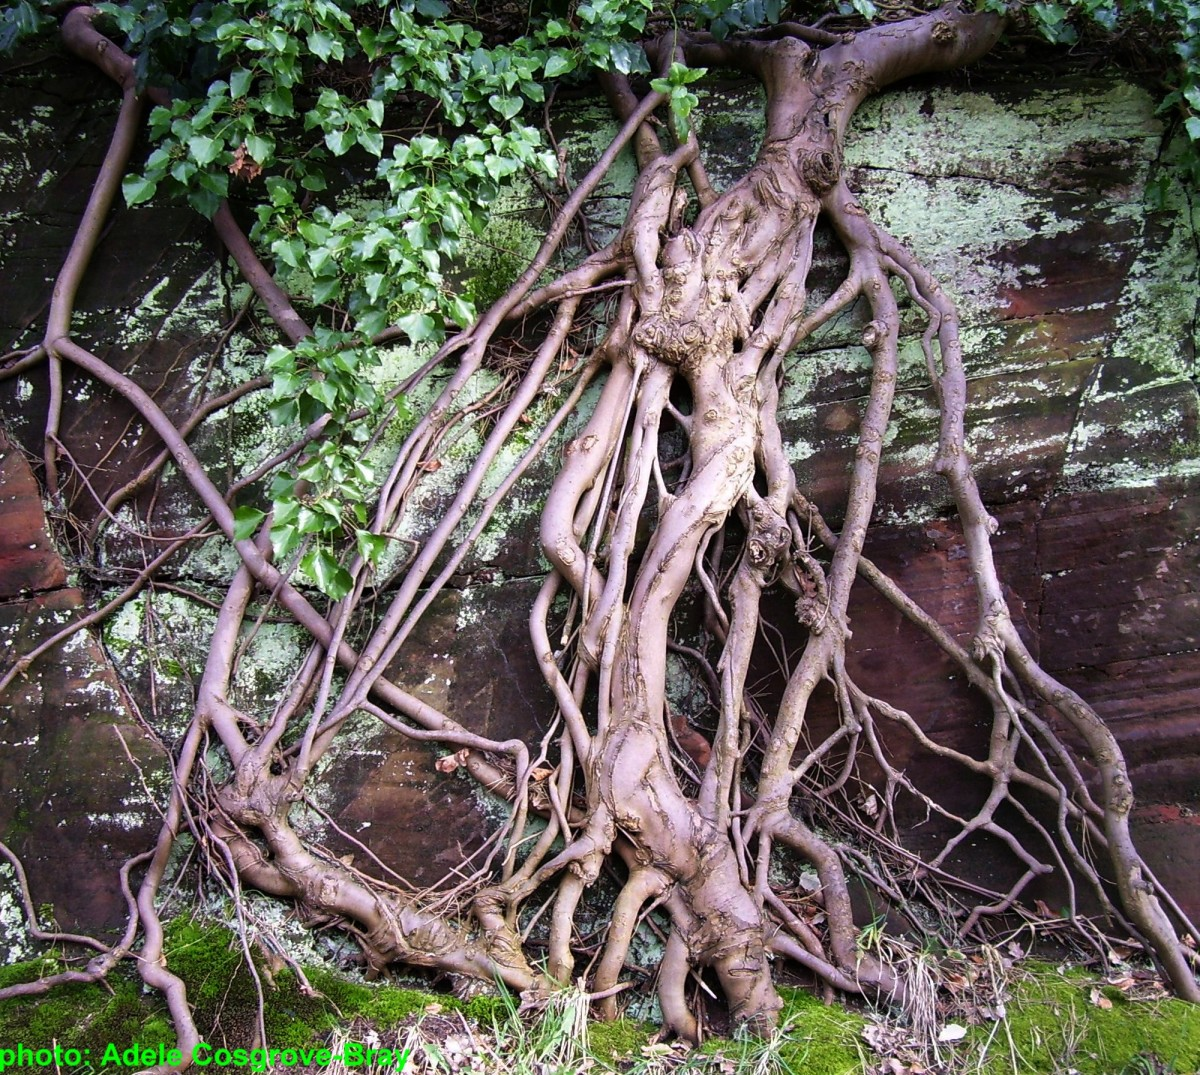 A marriage of root and rock.